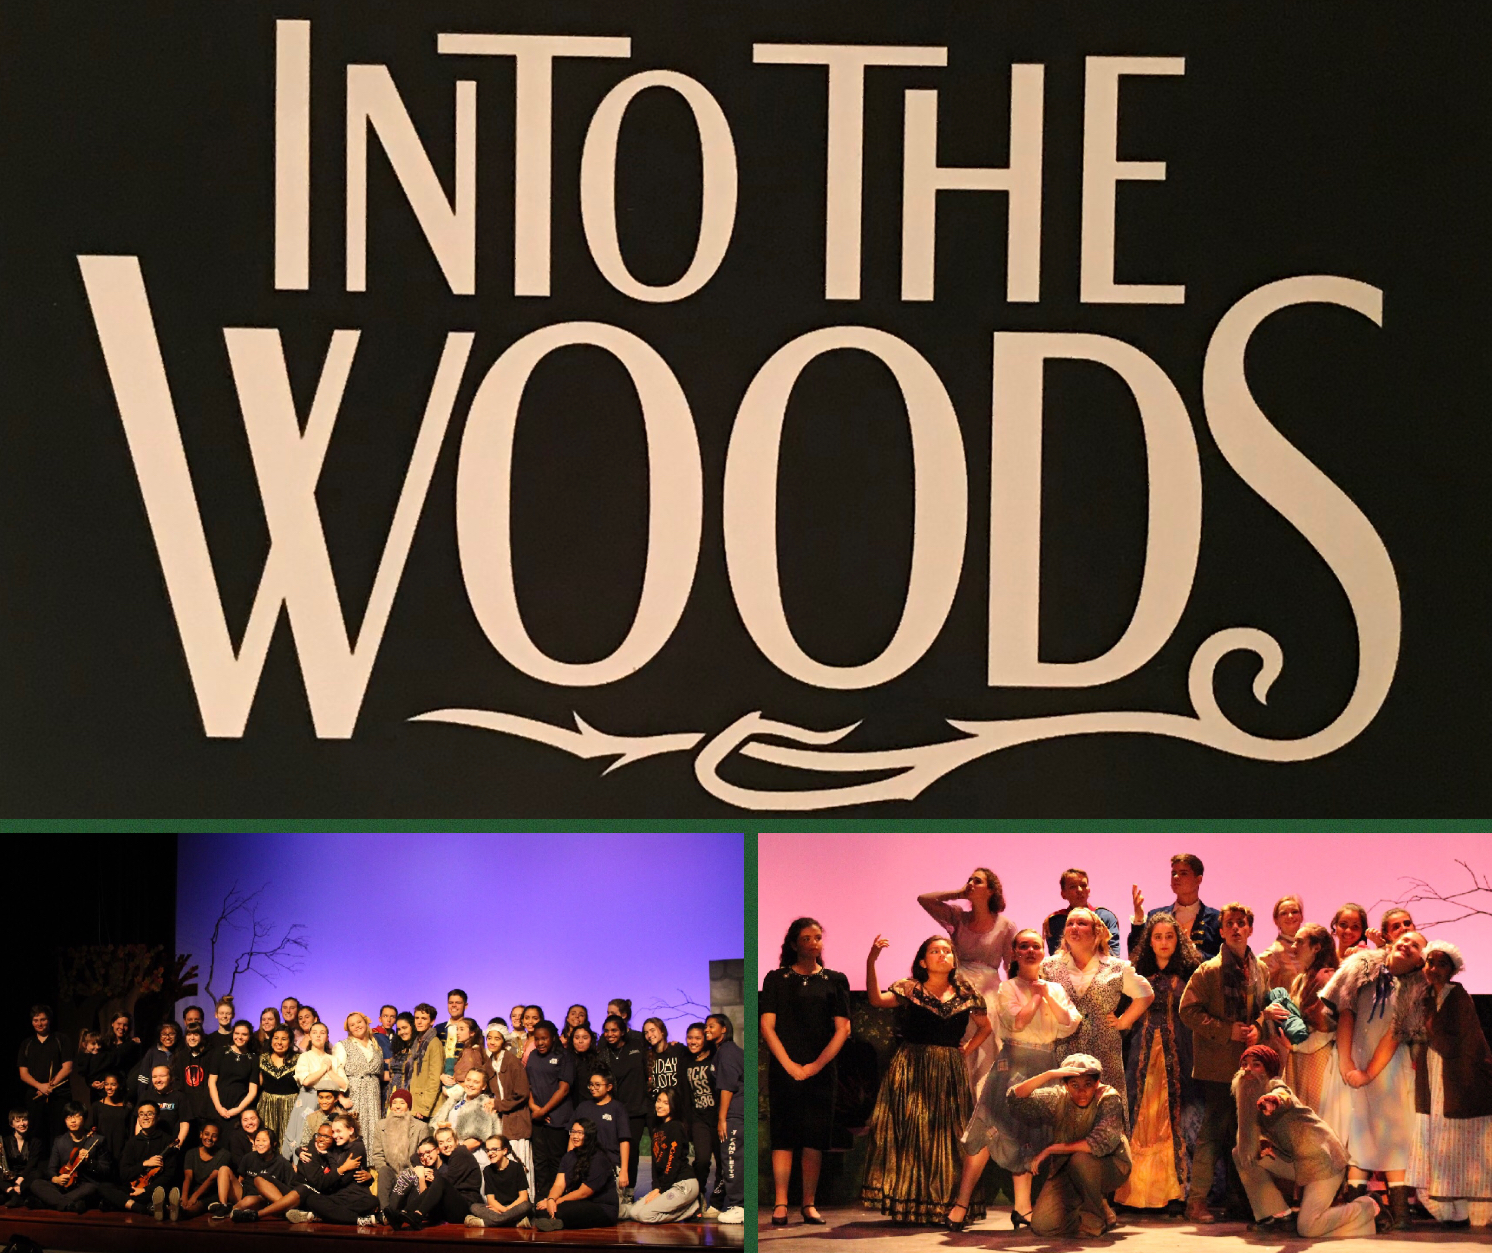 The cast and crew of Into the Woods. Collage by Dani Lock.